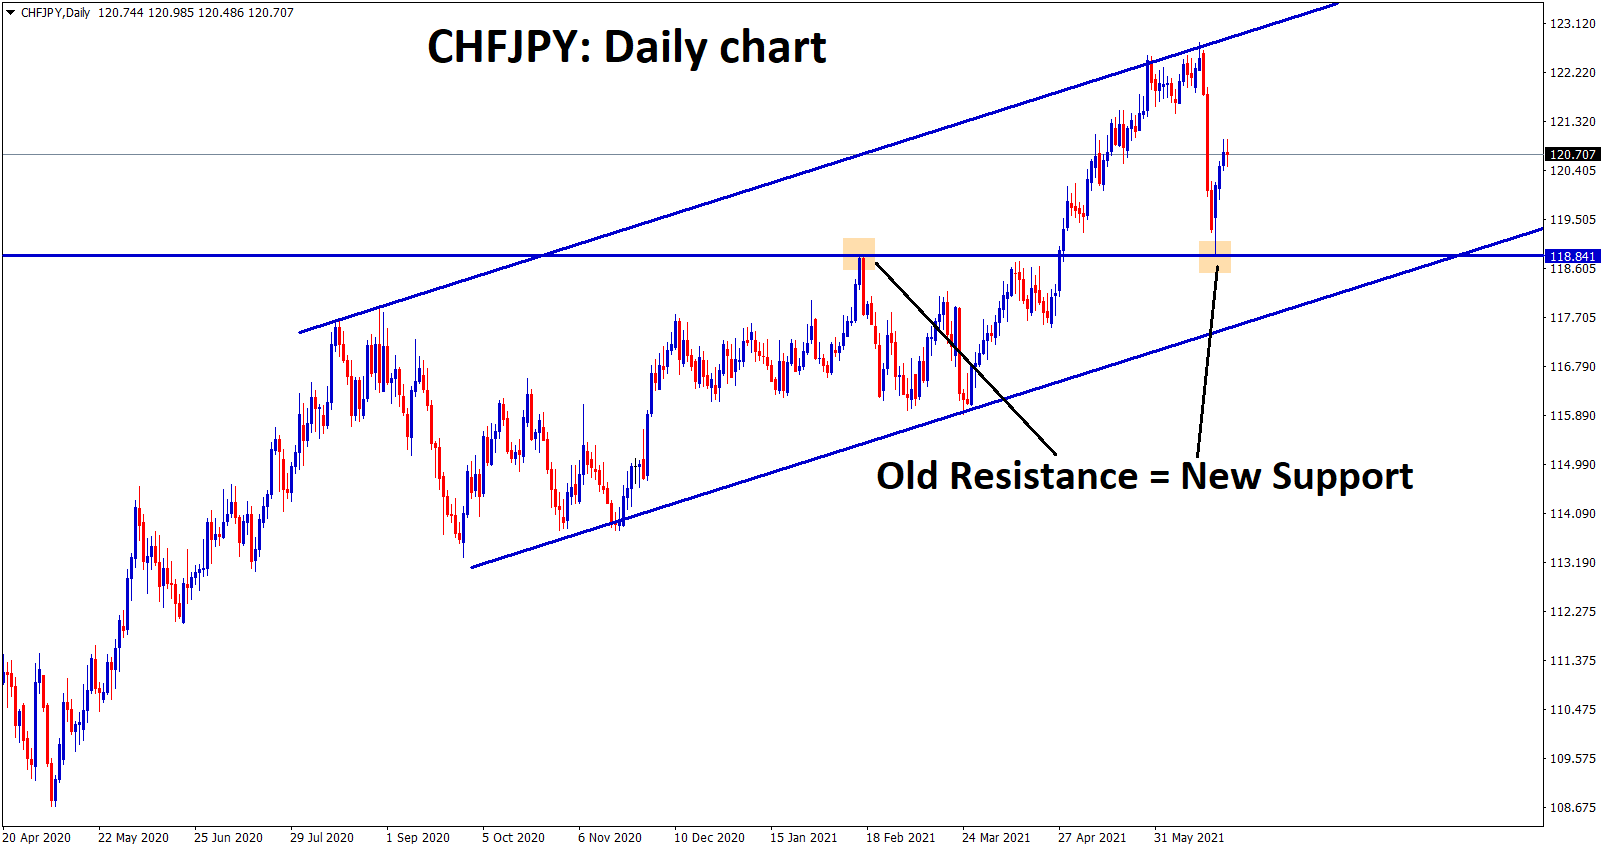 CHFJPY moving in a strong uptrend even after hitting the previous broken resistance it bounces back harder.